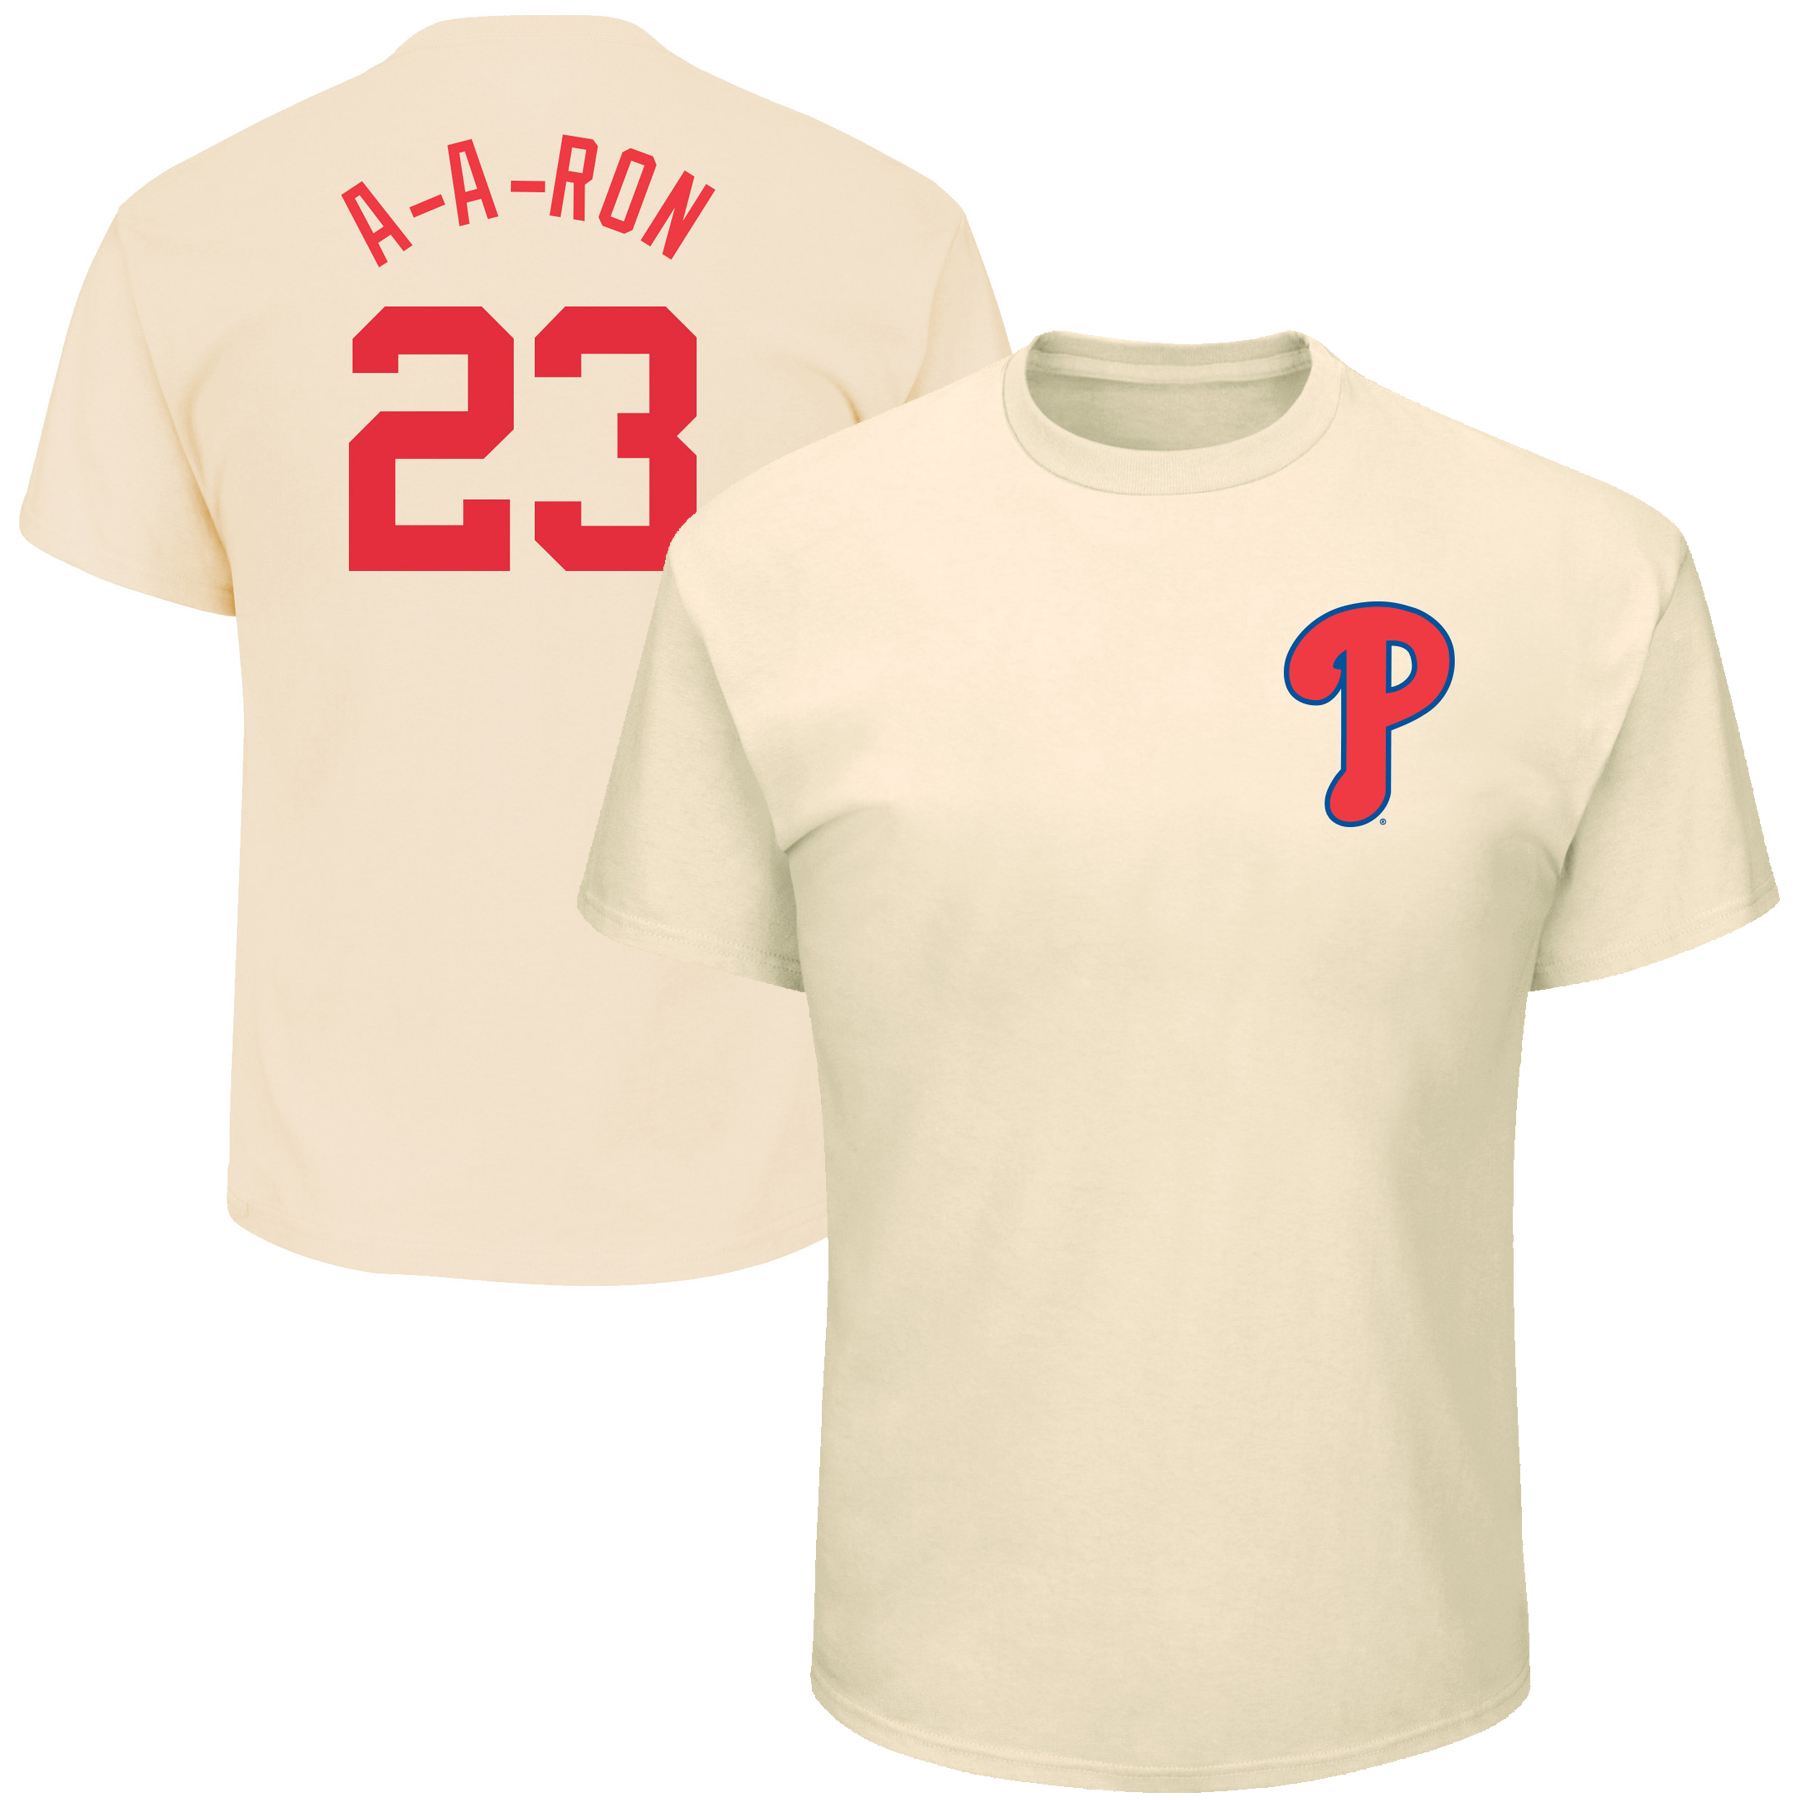 """Aaron Altherr """"A-A-Ron"""" Philadelphia Phillies Majestic Youth 2017 Players Weekend Name & Number T-Shirt - Cream"""